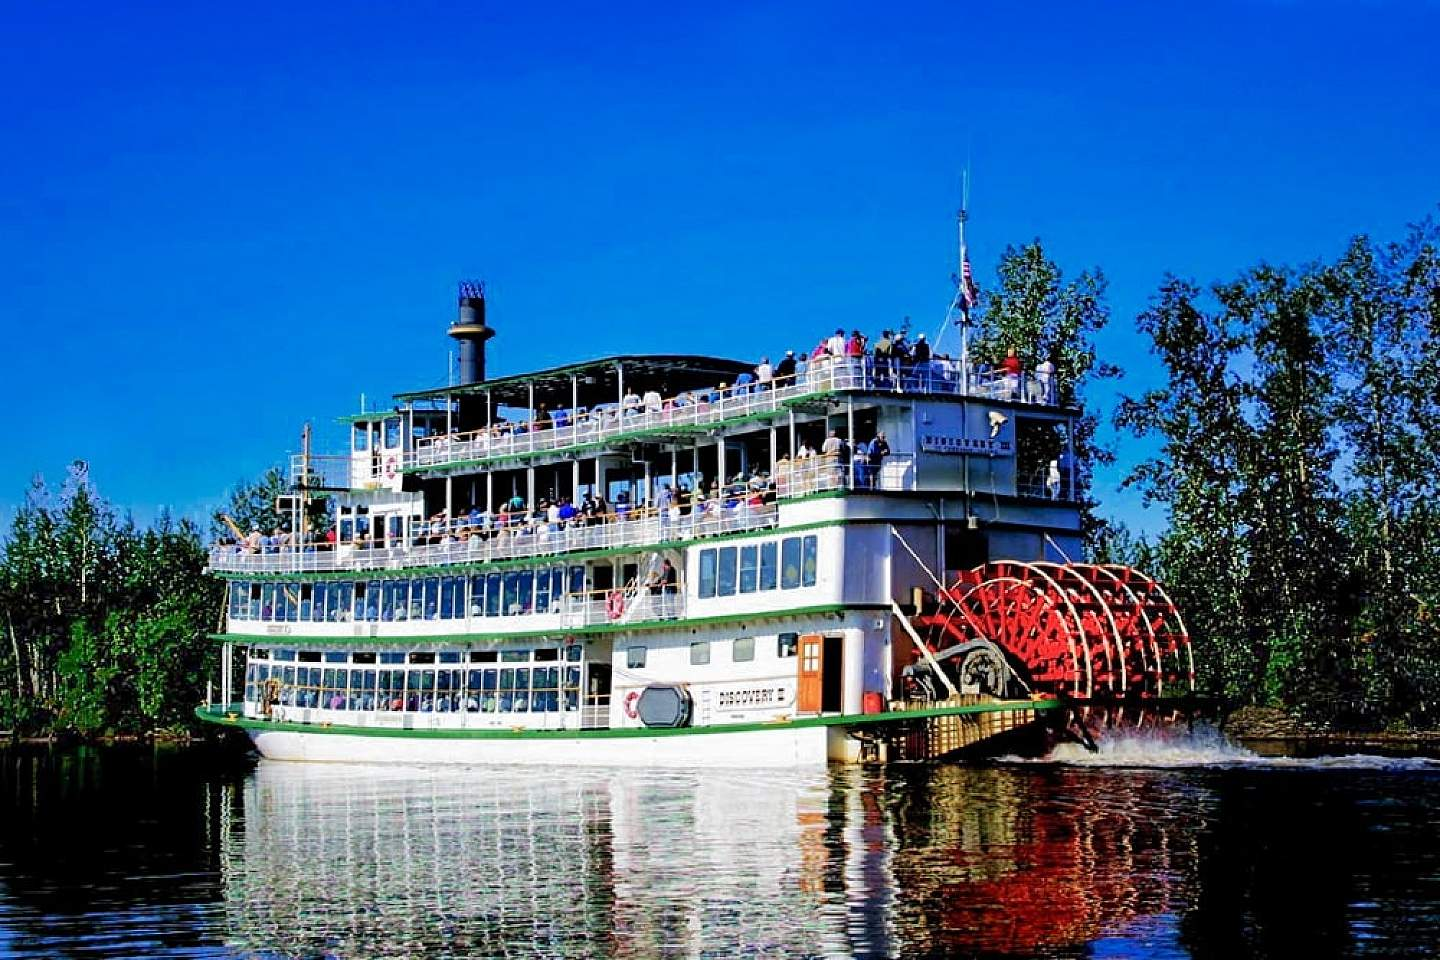 Climb on board an authentic Alaskan sternwheeler and take a journey back in time